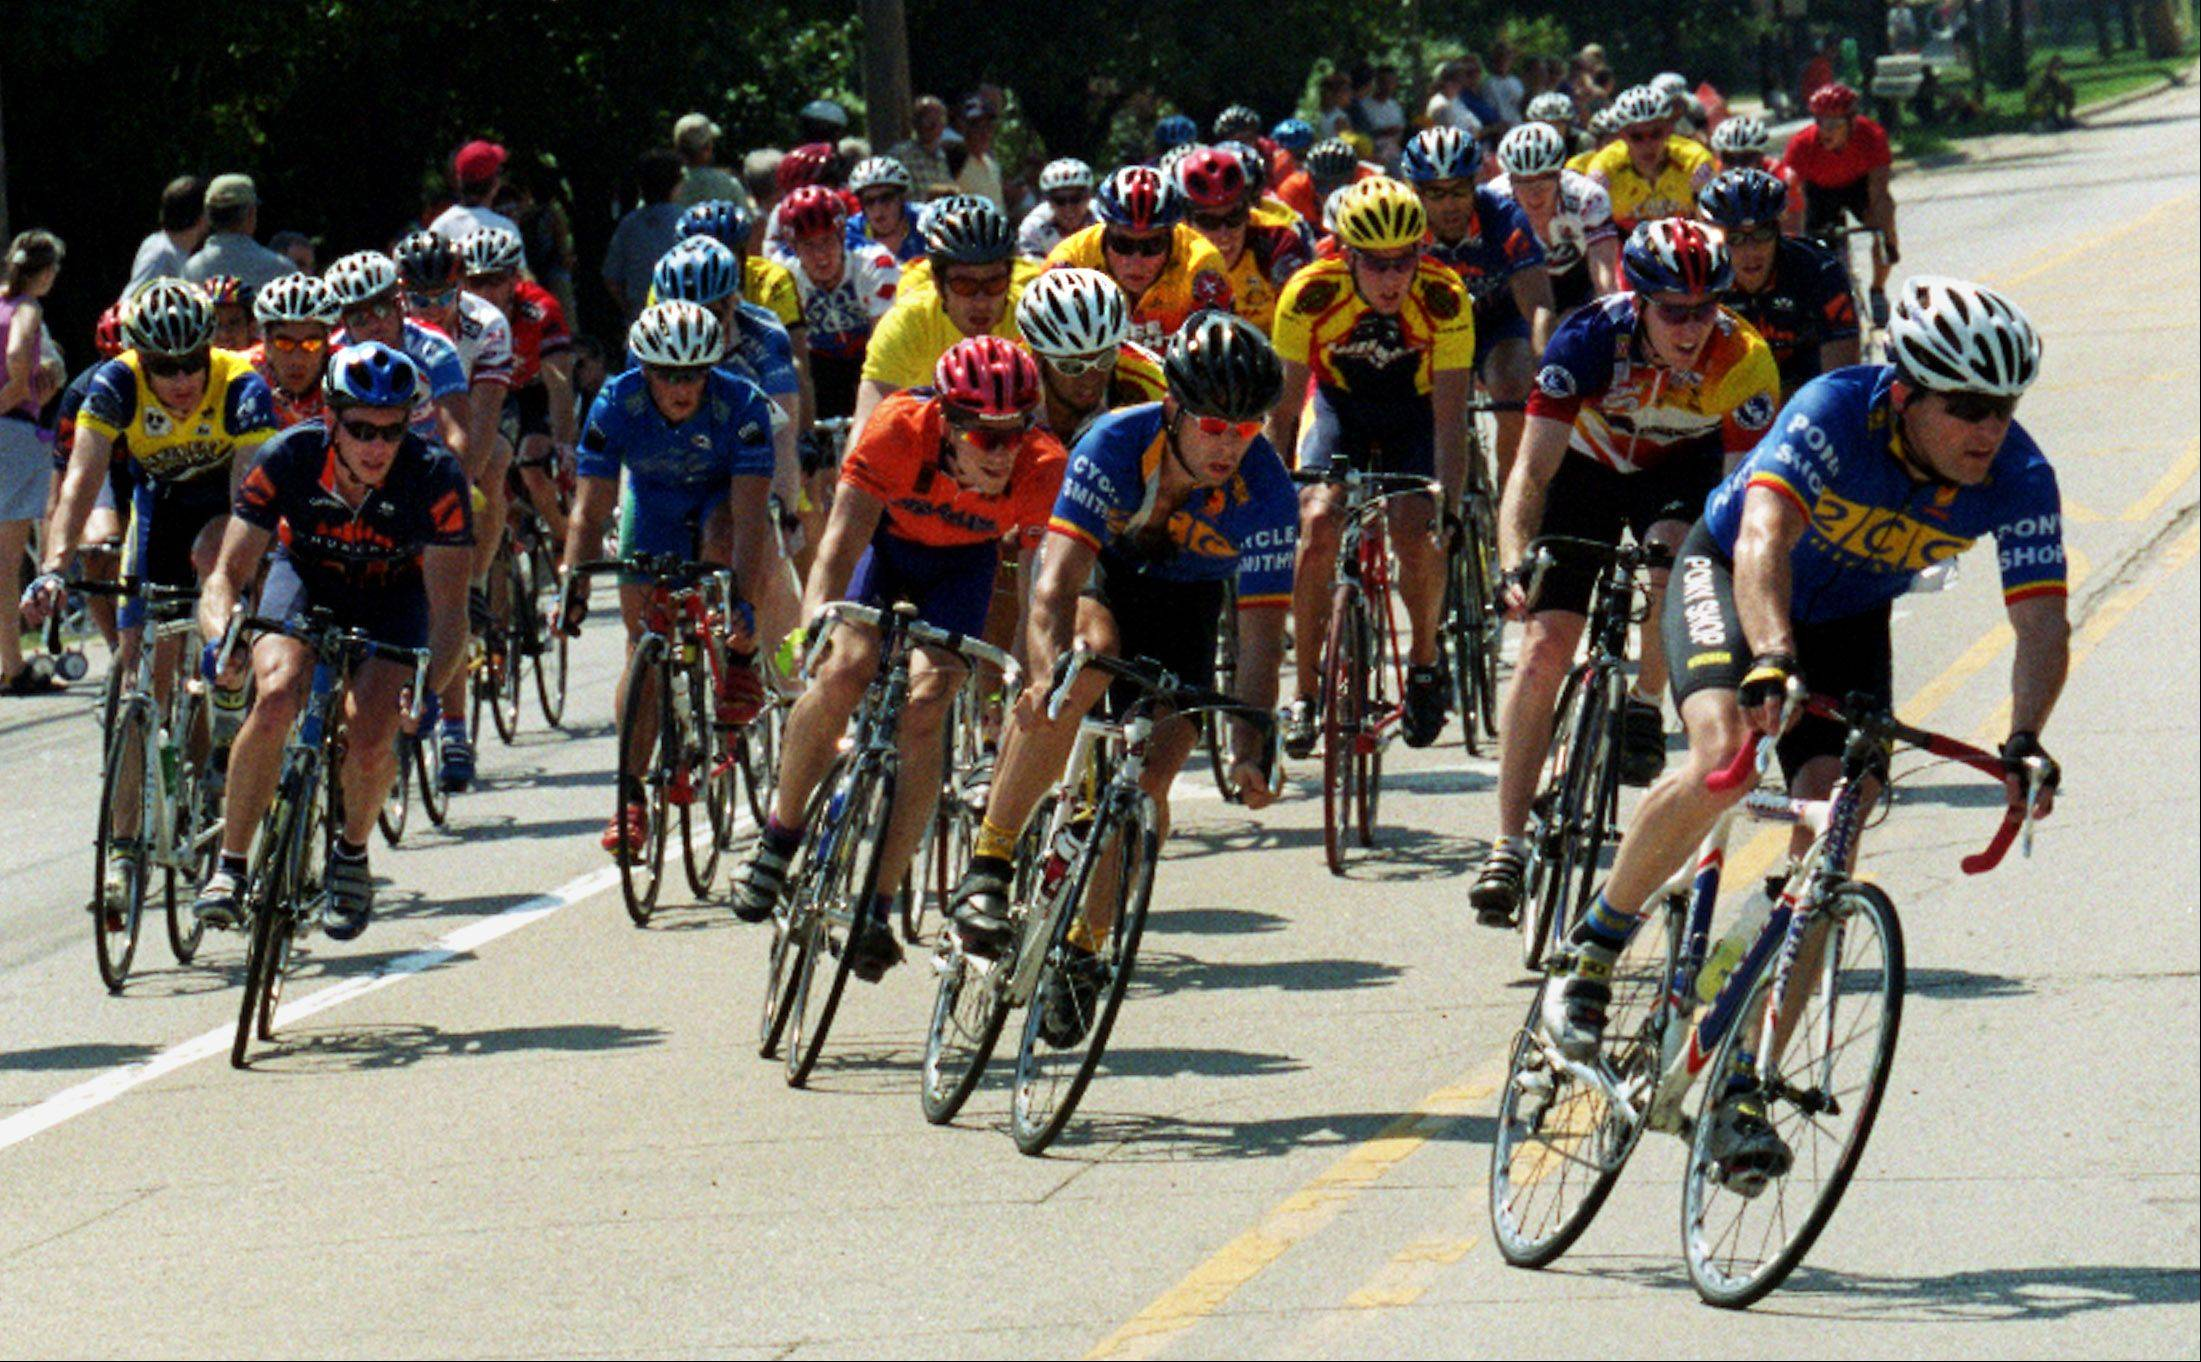 600 cyclists to race in Winfield Criterium